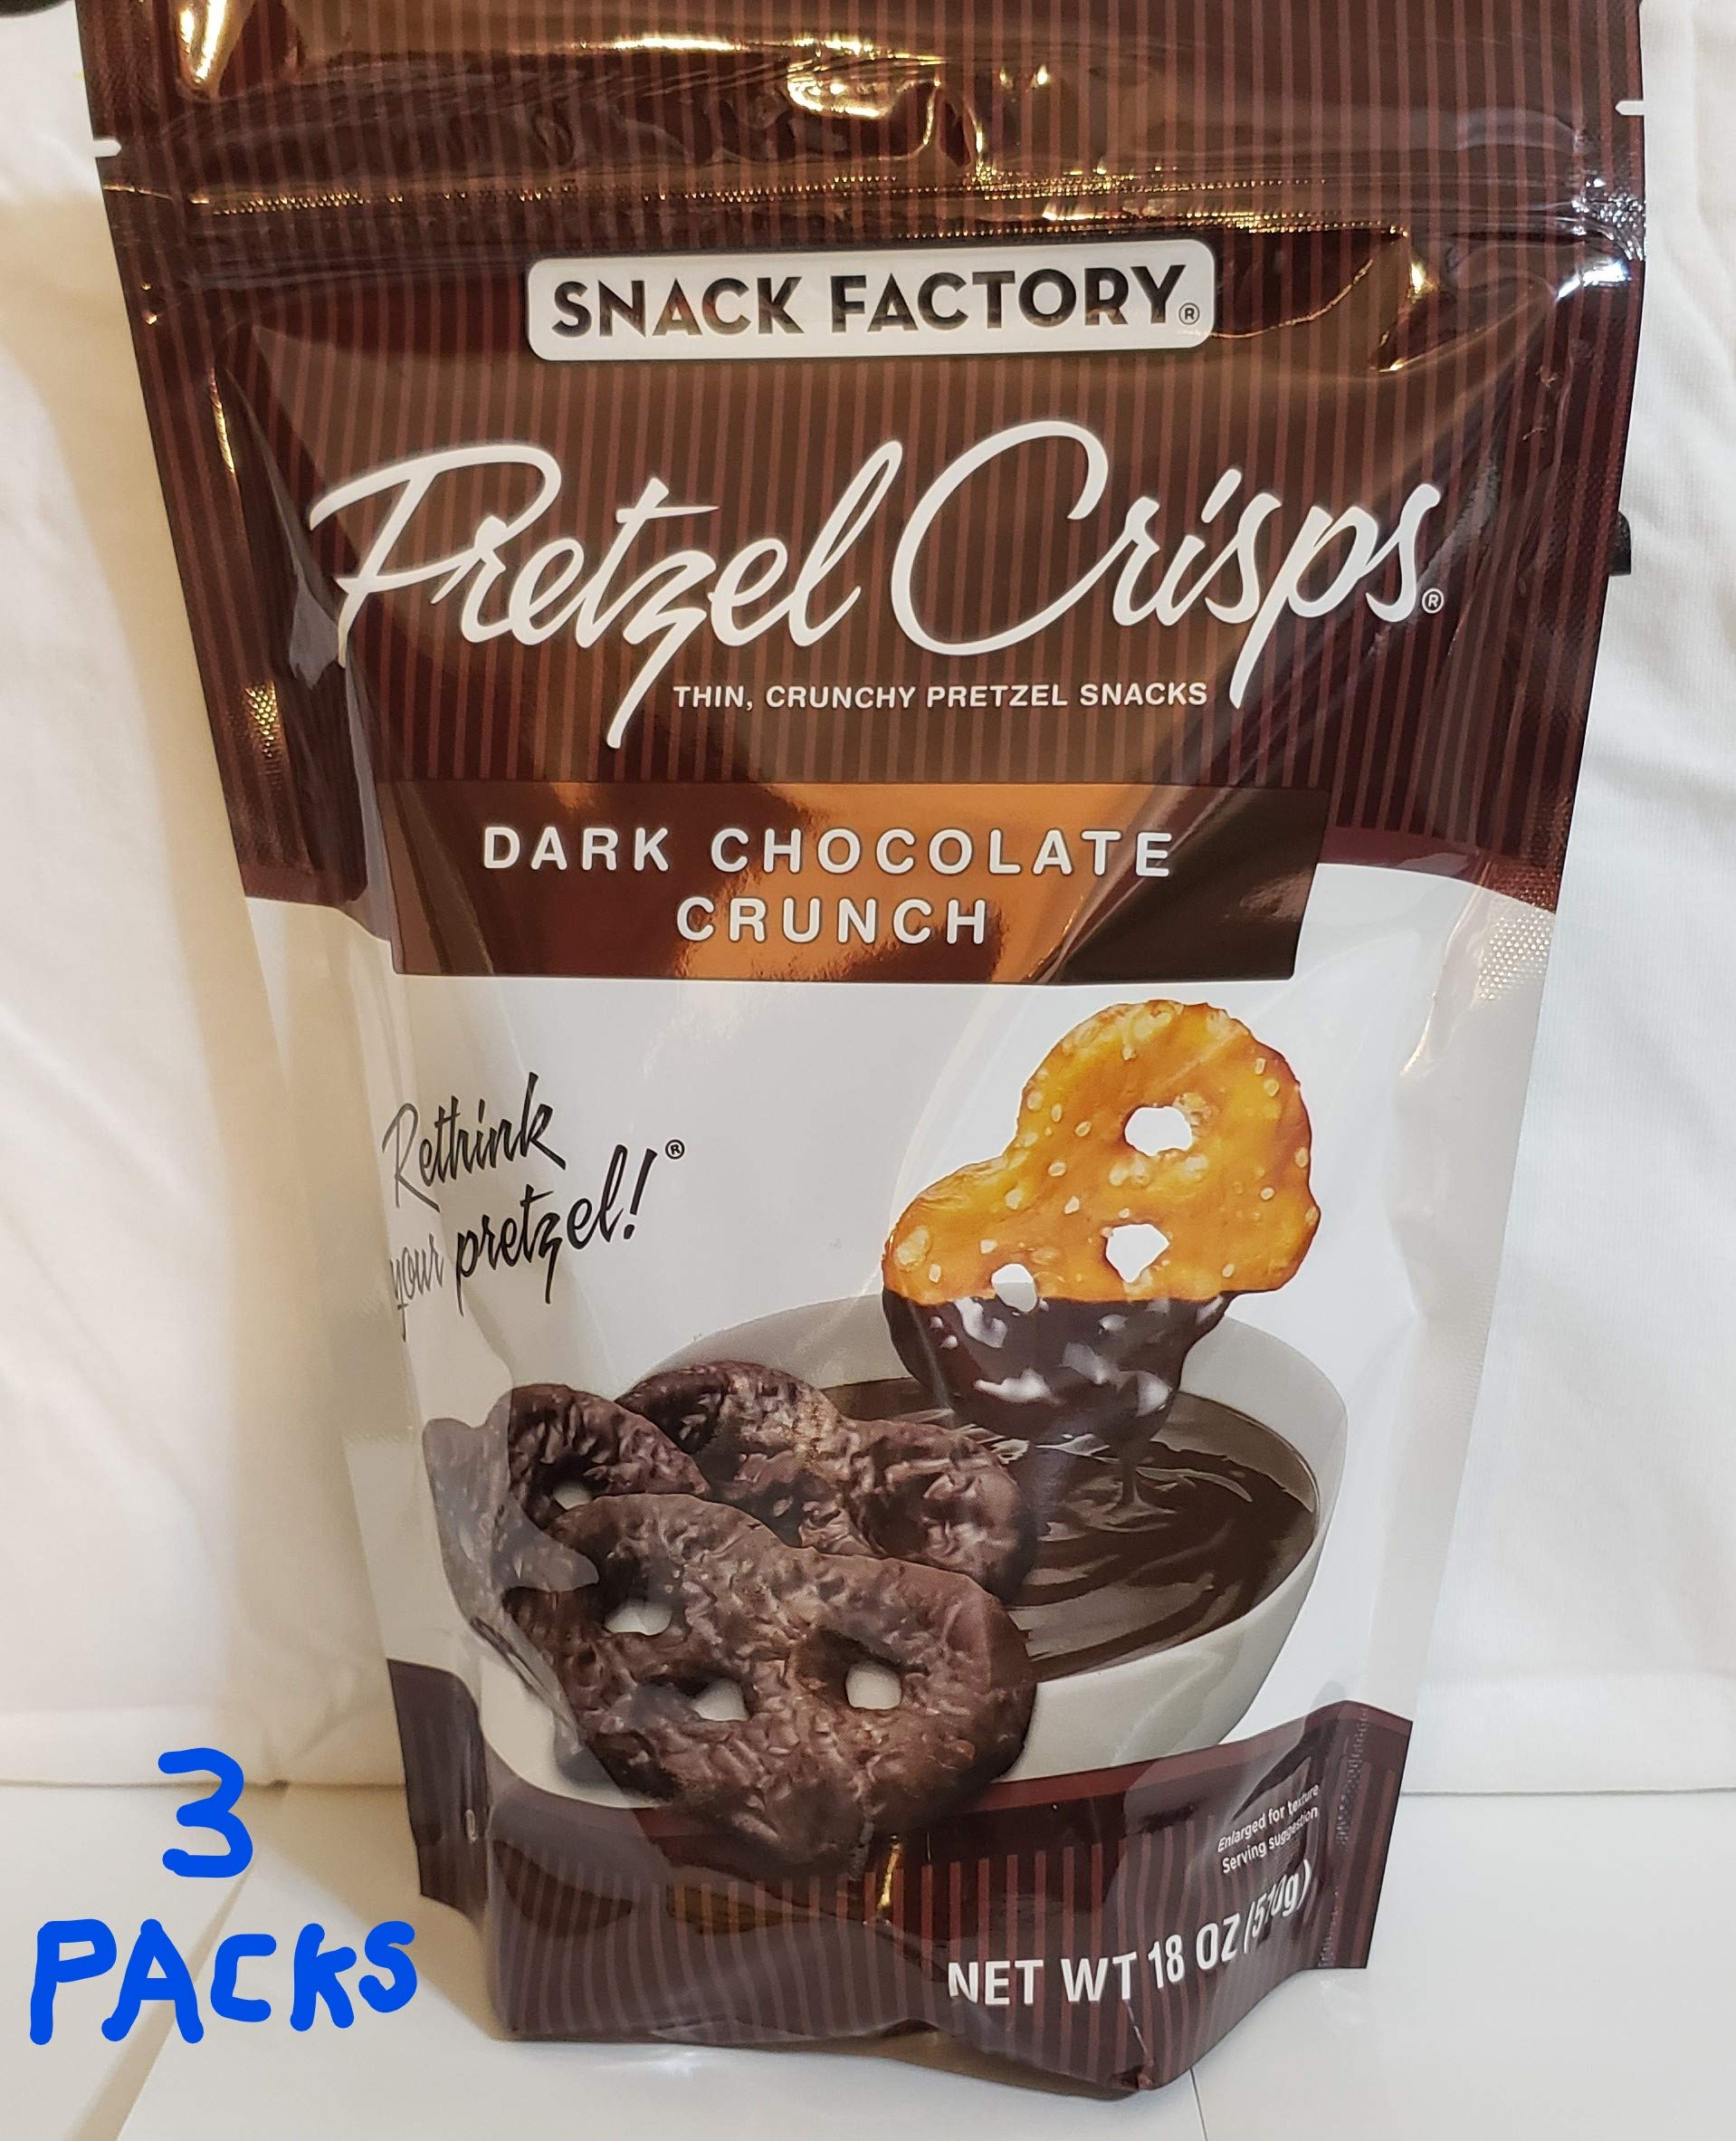 Pretzel Crisps Dark Chocolate Crunch (Pack of 3) by Snack Factory